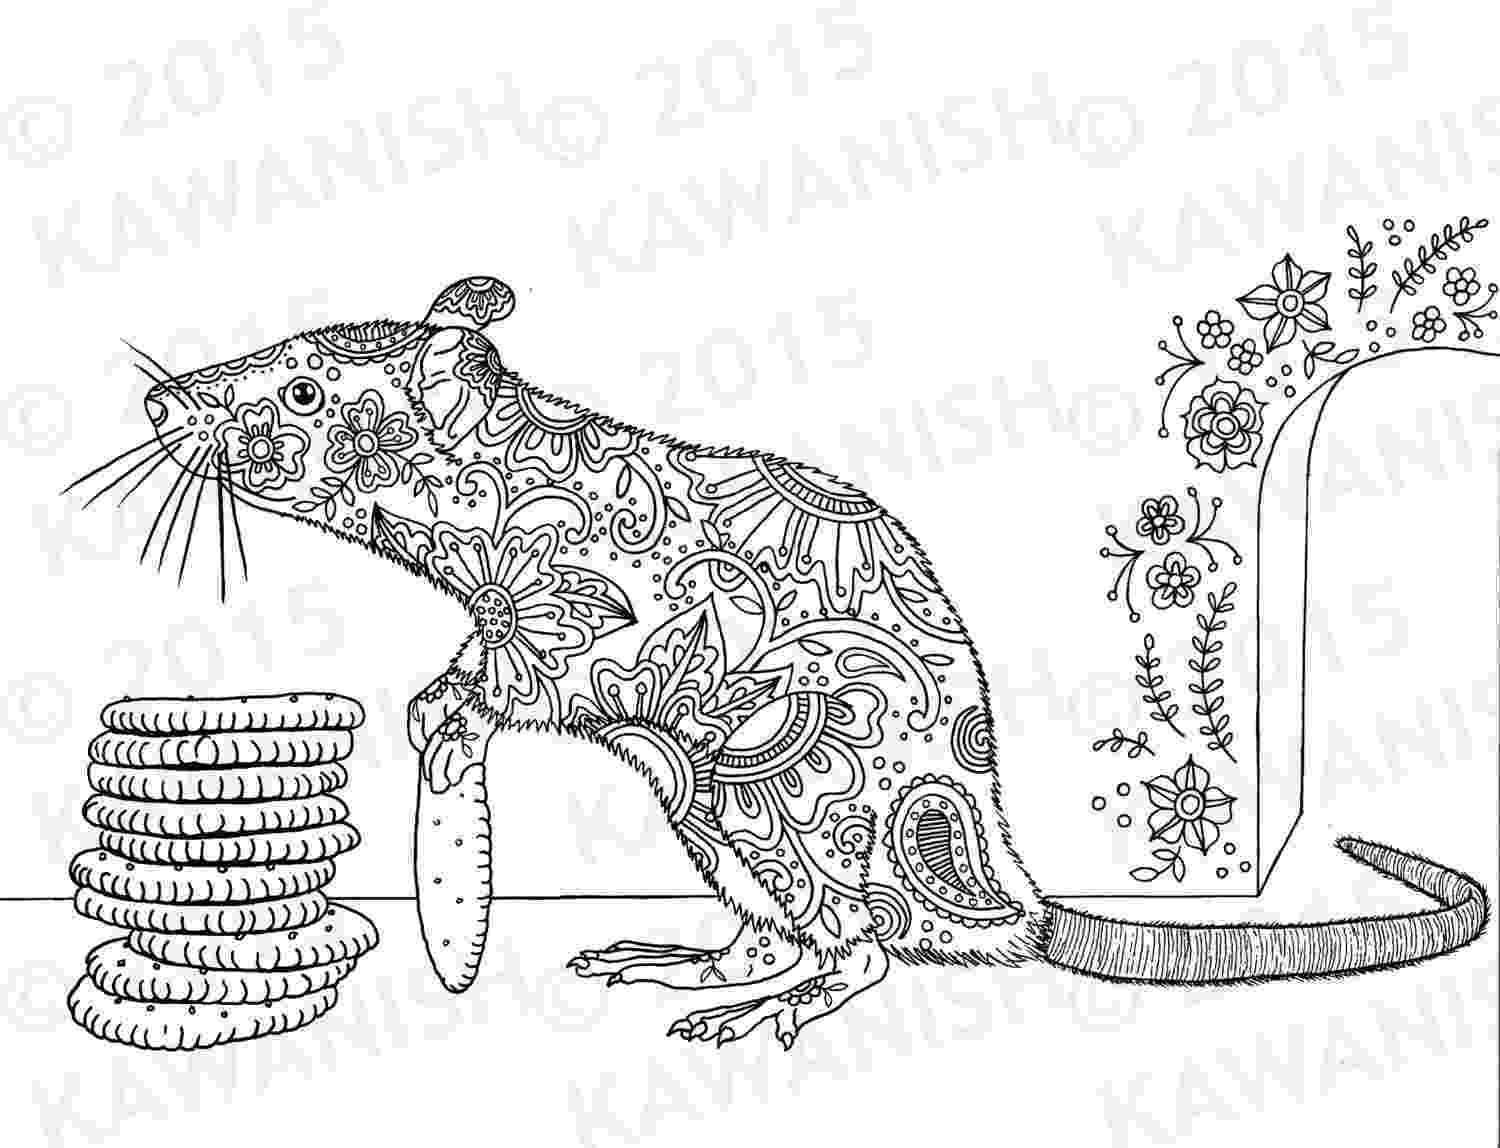 rat pictures to color top 10 rat coloring pages for little ones dog coloring pictures rat to color